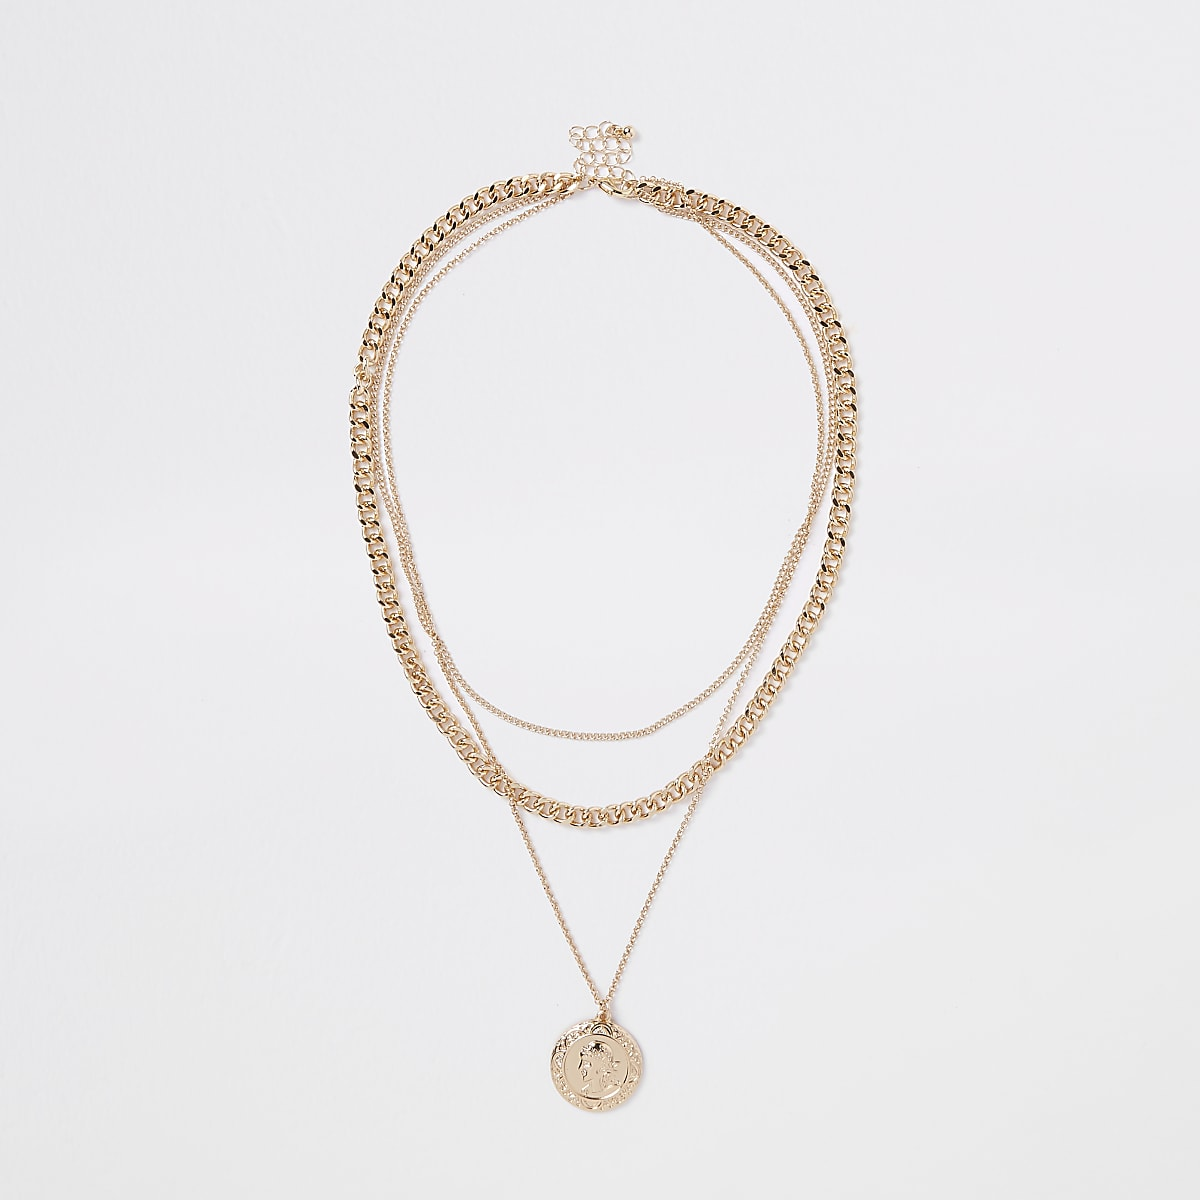 Gold color pendant chain layered necklace